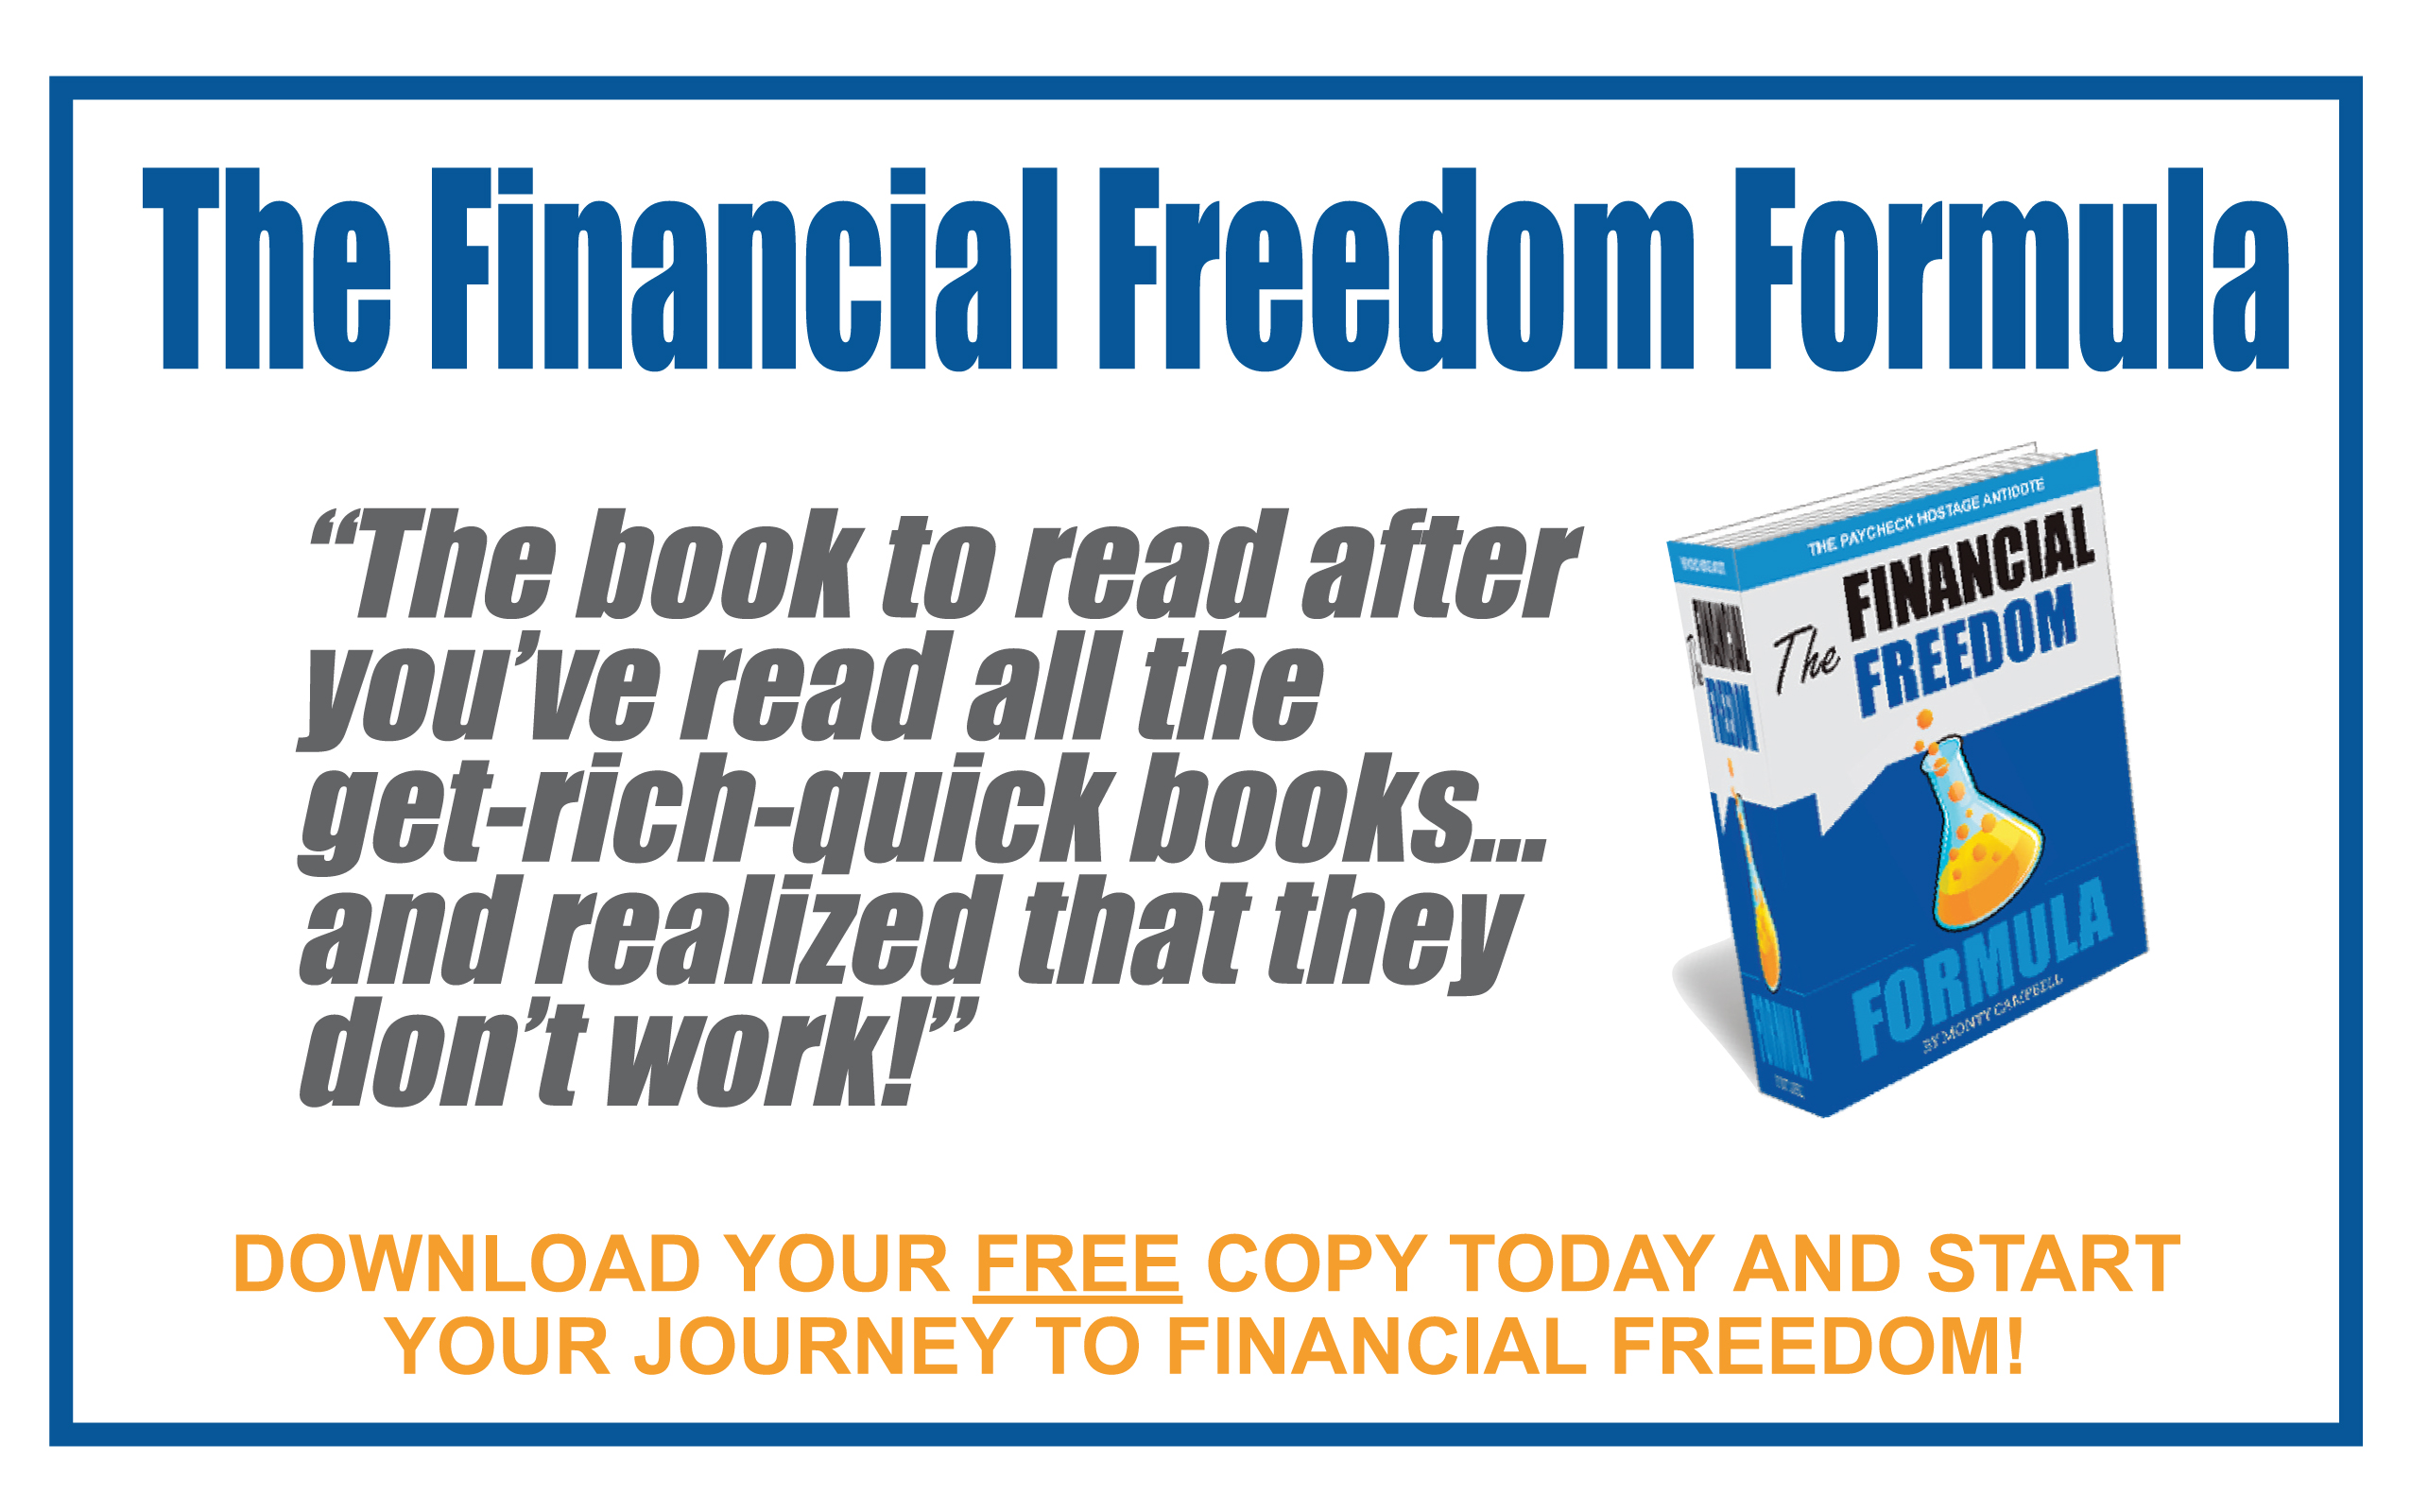 BannerGraphics-7-18-15-FinancialFreedom-MontyCampbell